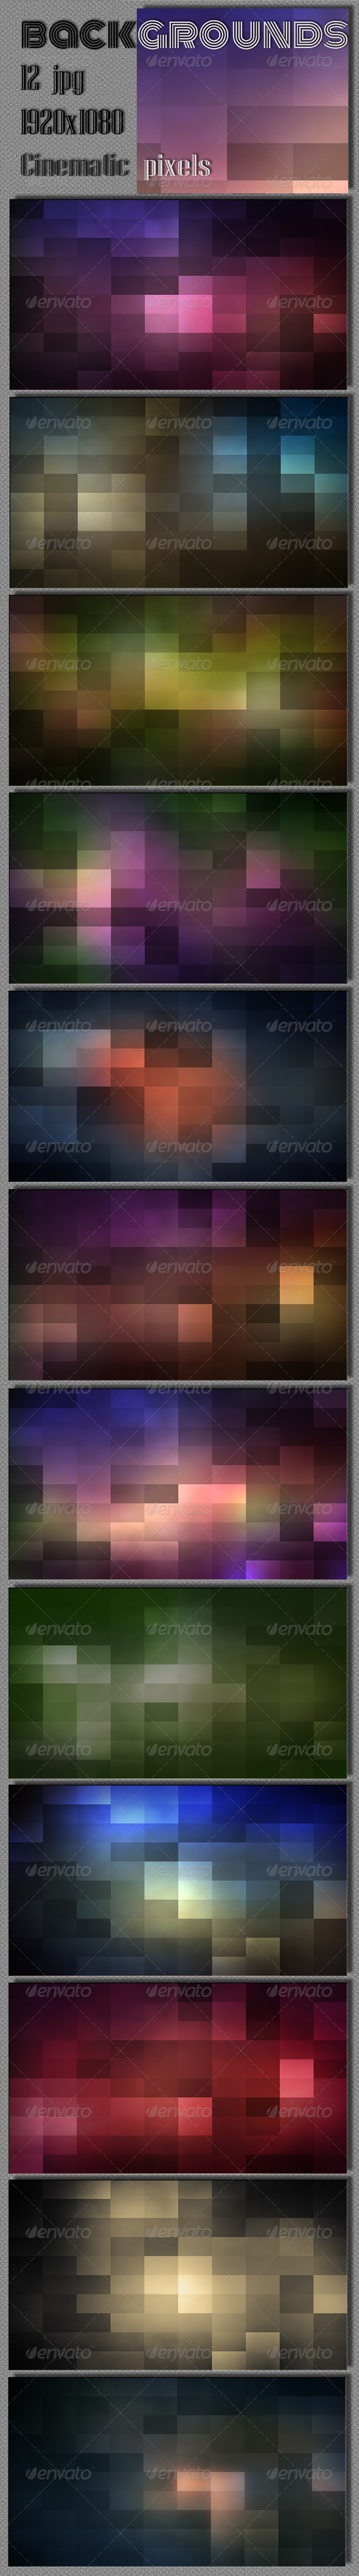 GraphicRiver Pixel Cinematic Wallpaper 7901621